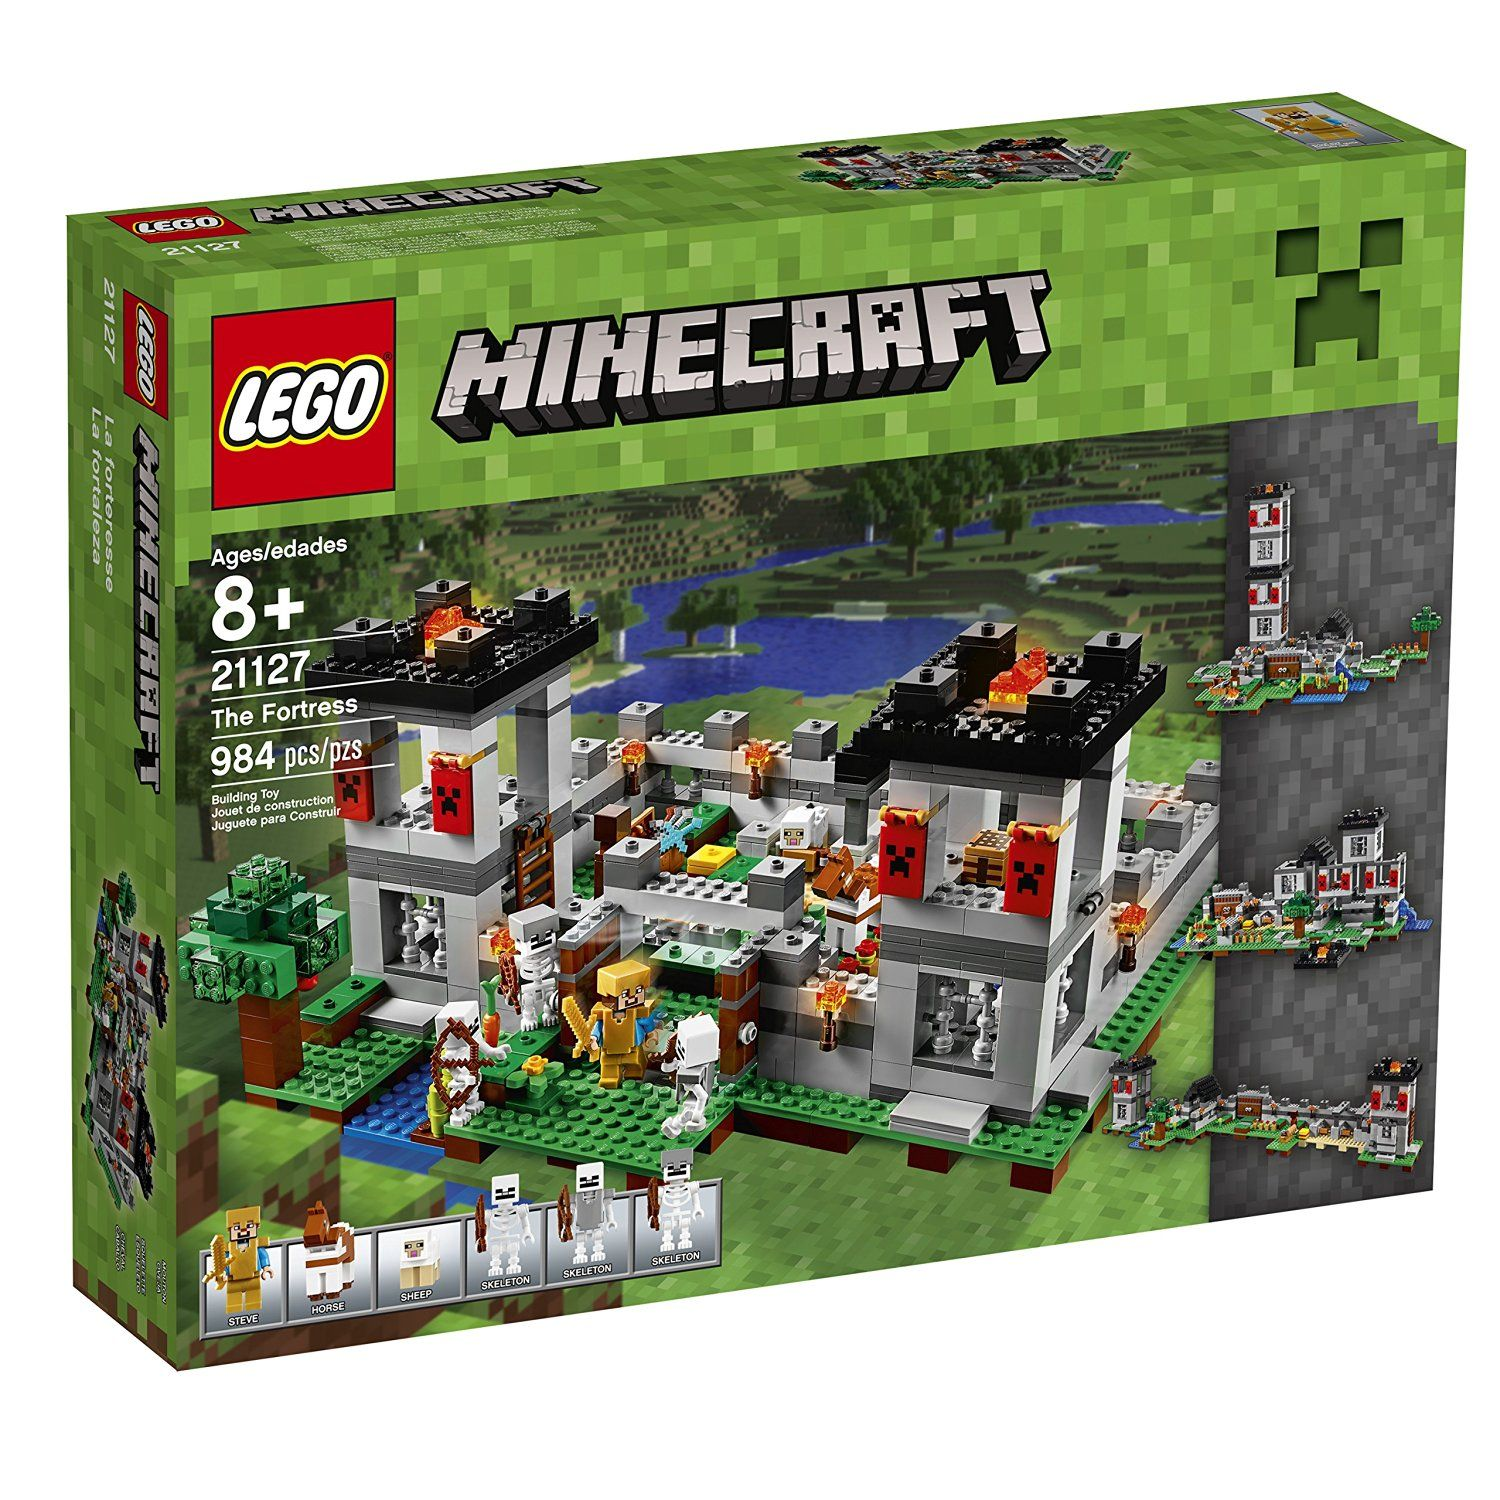 amazon com lego minecraft 21127 the fortress building kit 984